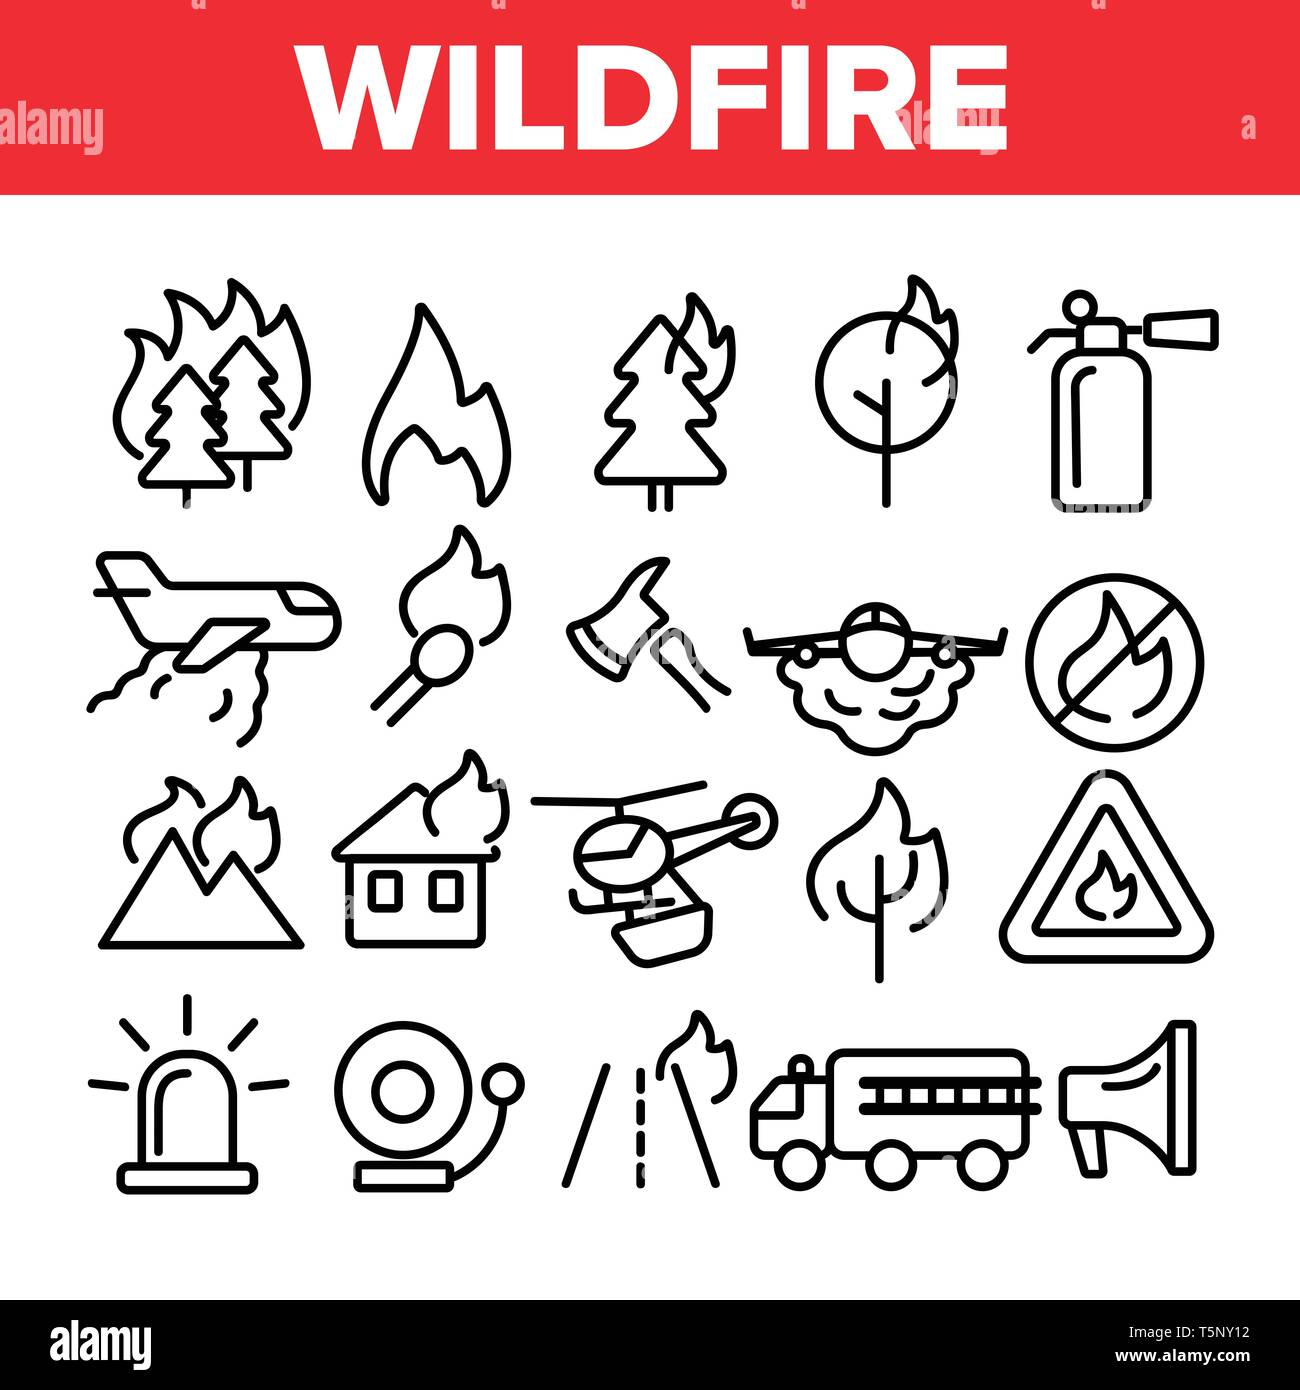 Wildfire, Bushfire Vector Thin Line Icons Set Stock Vector